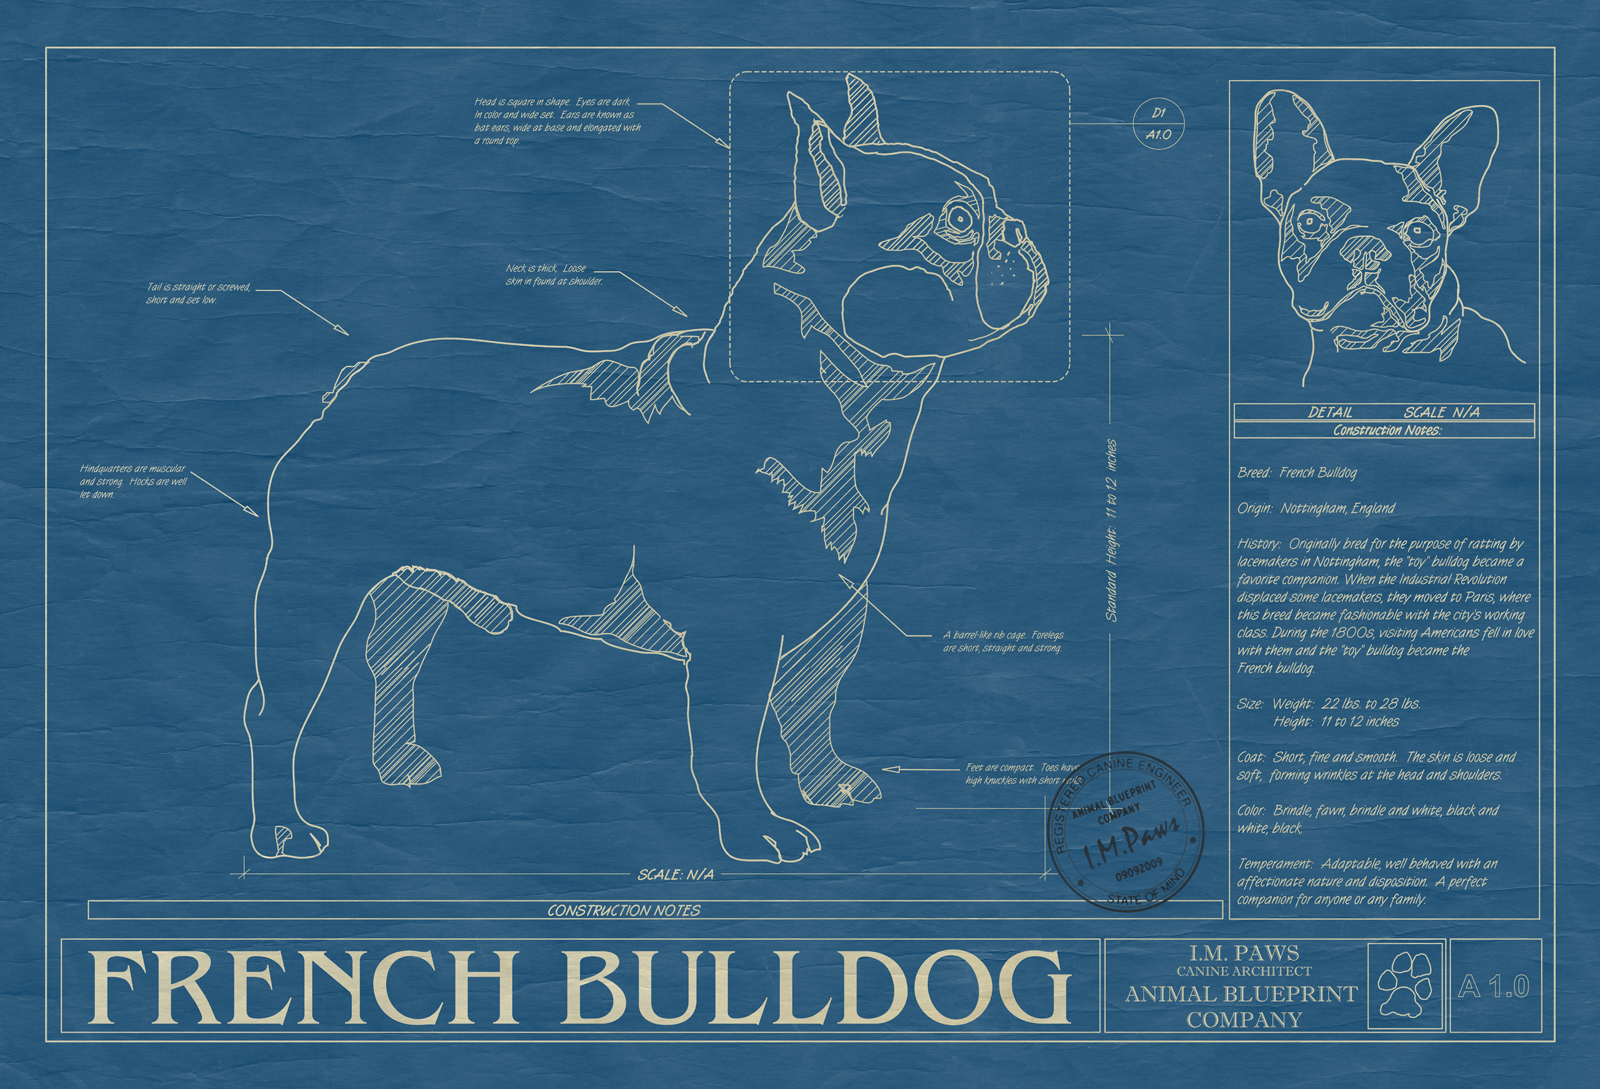 French bulldog animal blueprint company french bulldog dog blueprint malvernweather Image collections